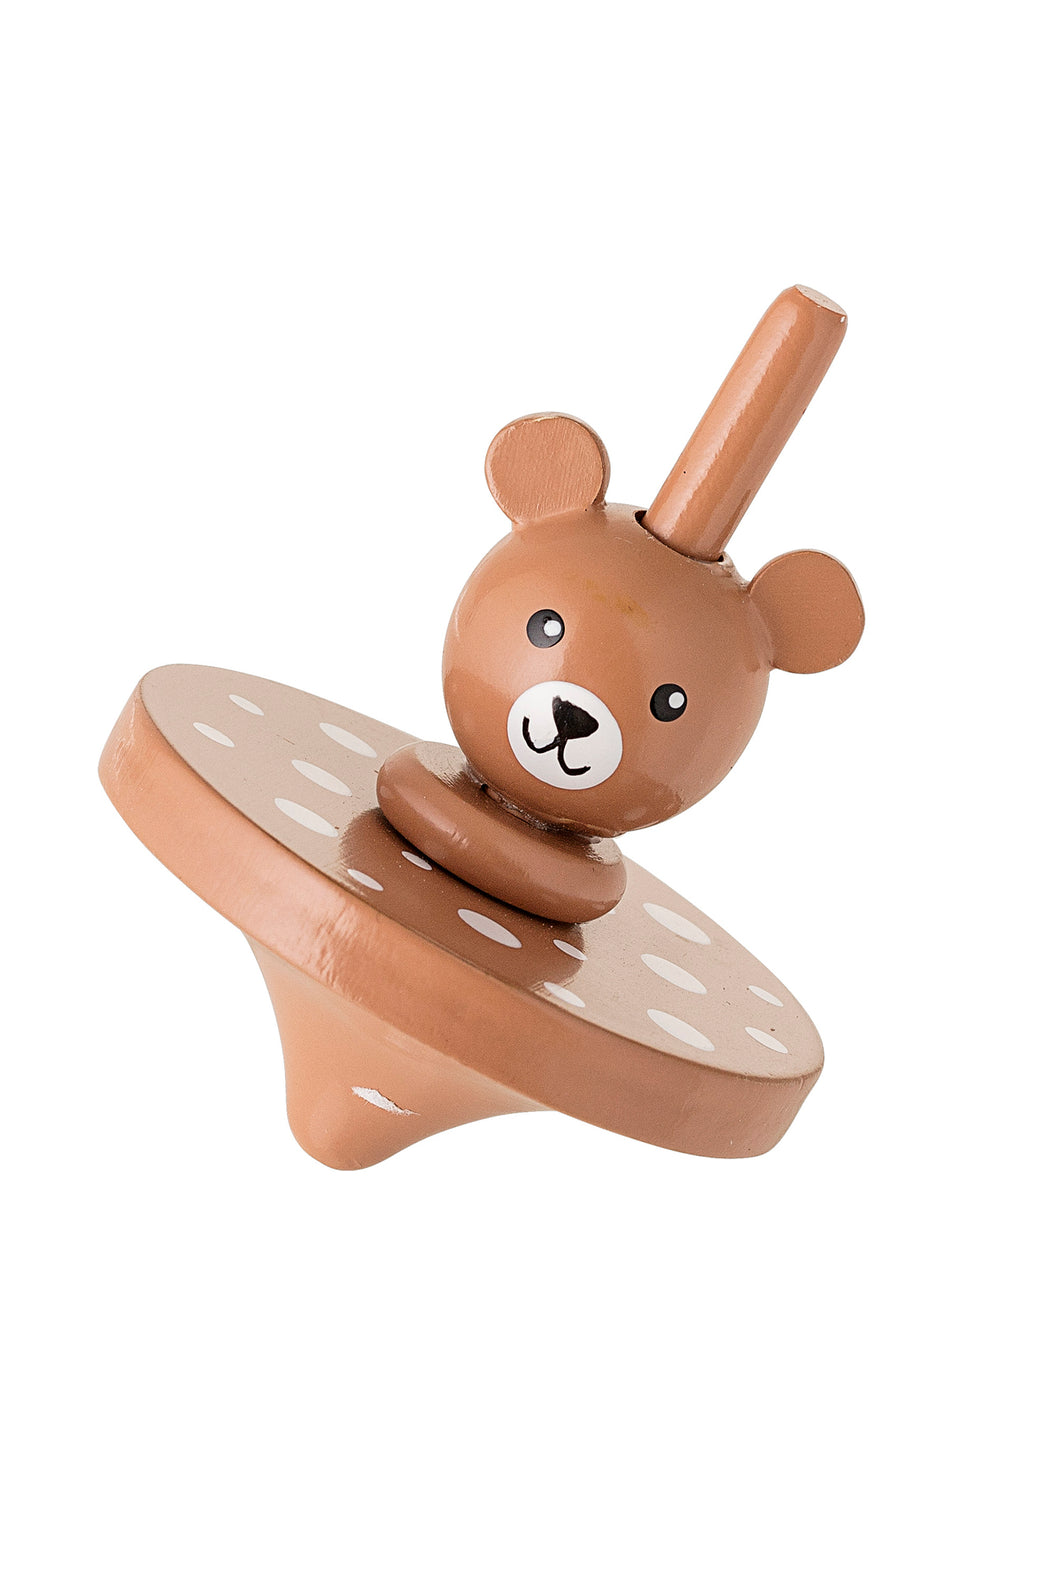 Bear Spinning Toy, Toy, Bloomingville - 3LittlePicks